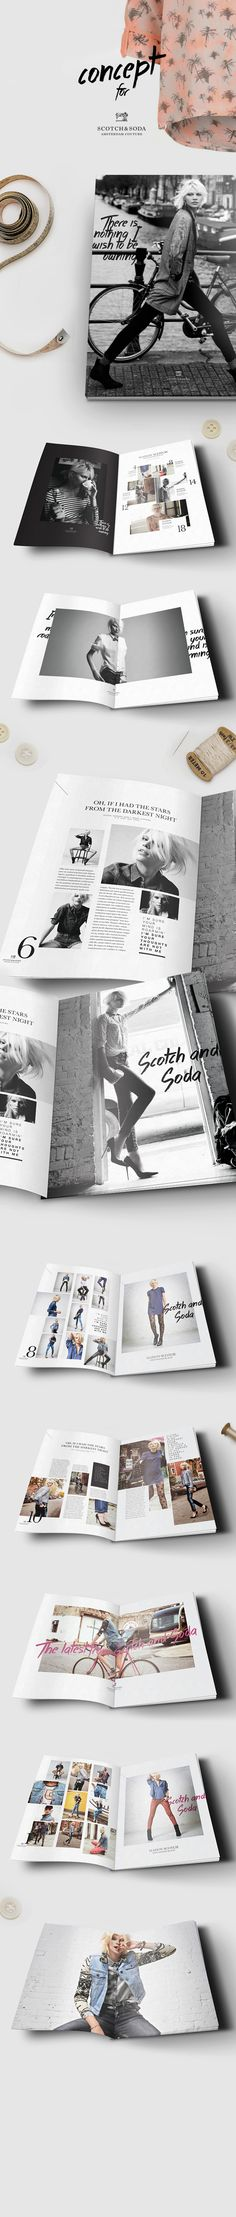 Scotch & Soda magazine/lookbook concept on Behance